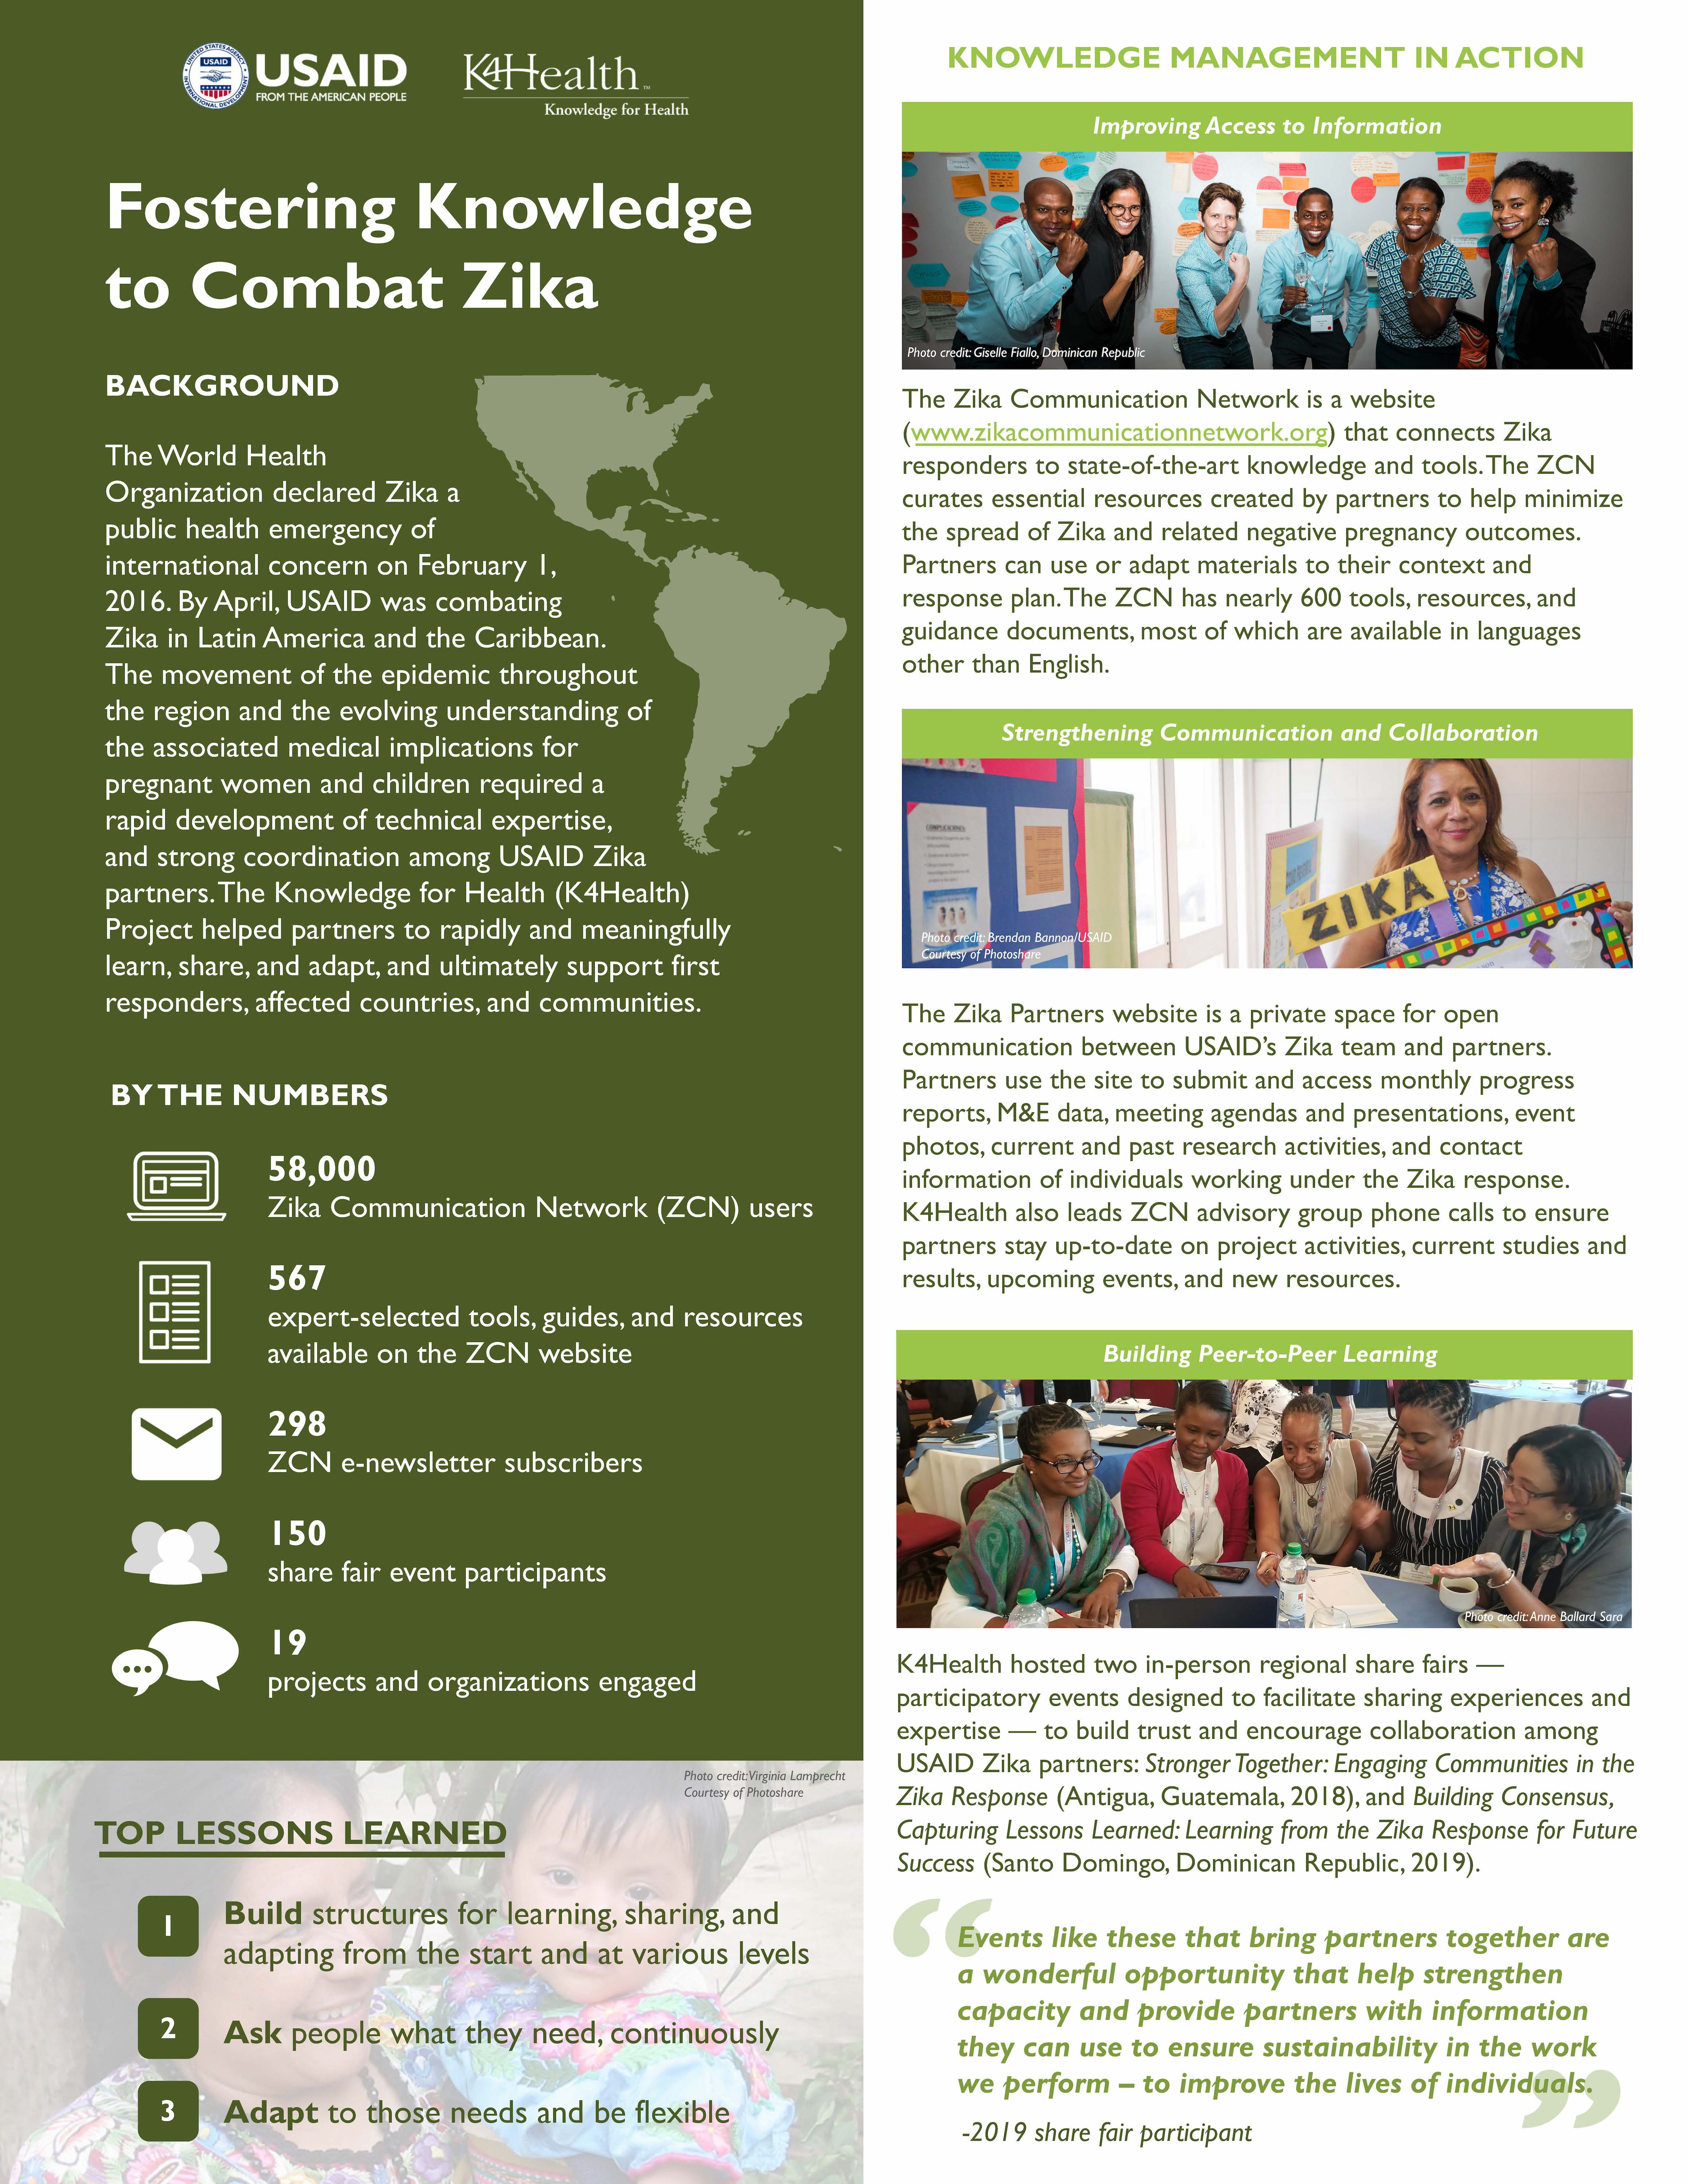 Fostering Knowledge to Combat Zika